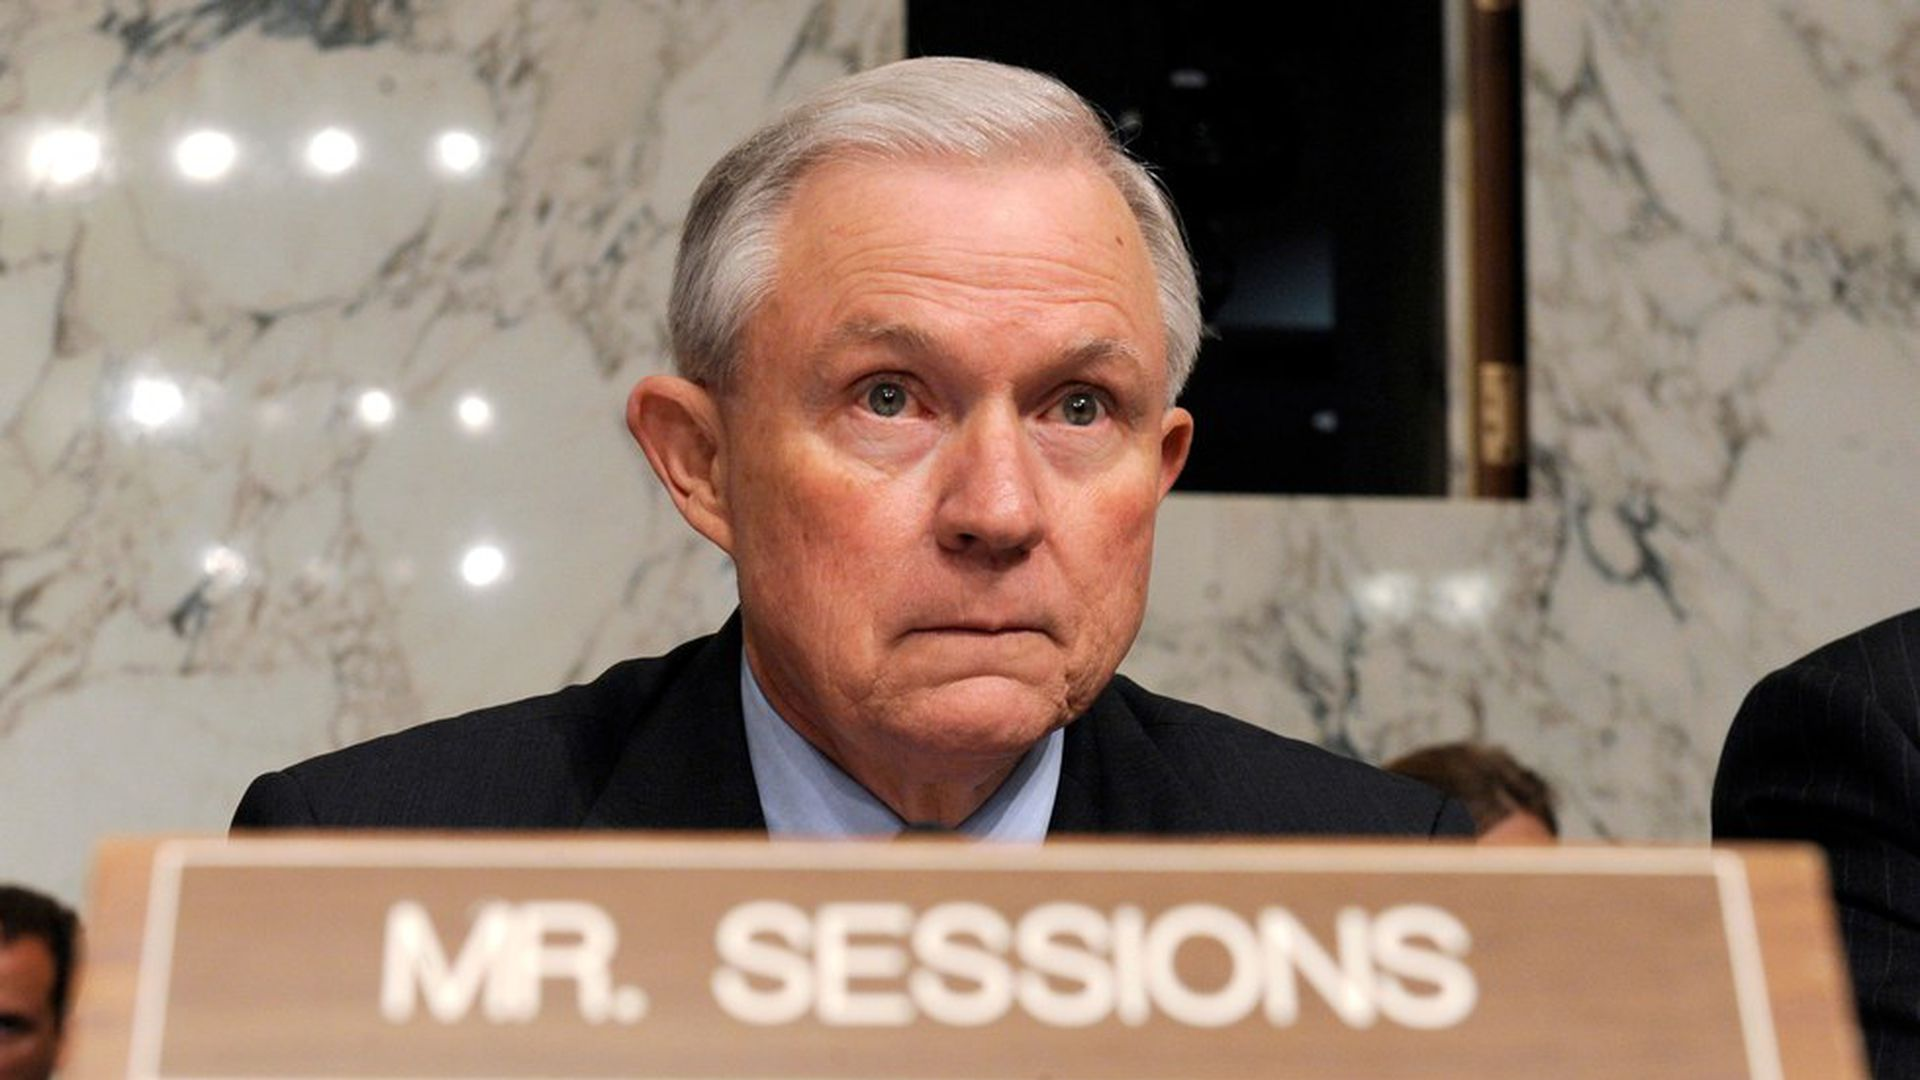 Sessions reverses transgender worker protection policy